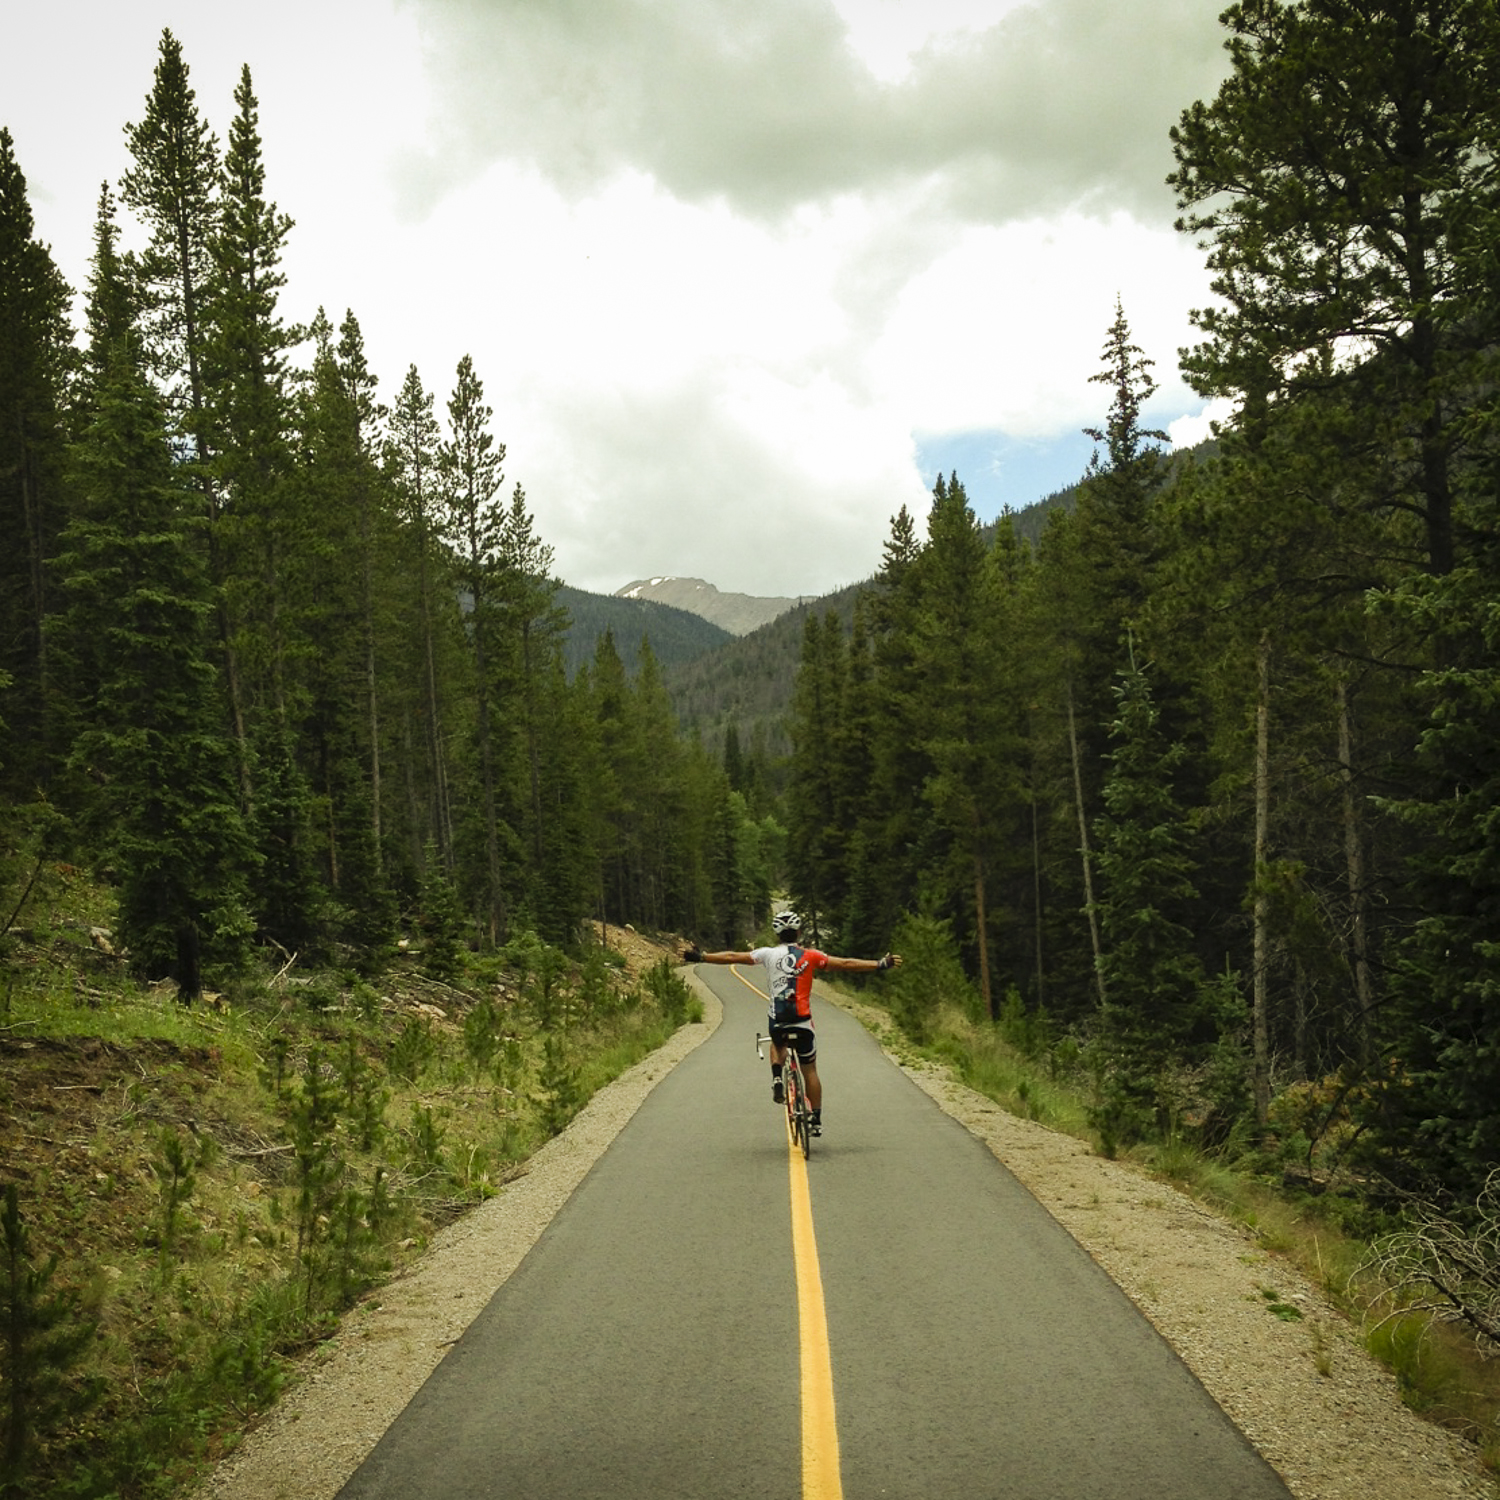 There are miles of perfect, empty bike path leading up to Loveland Pass.